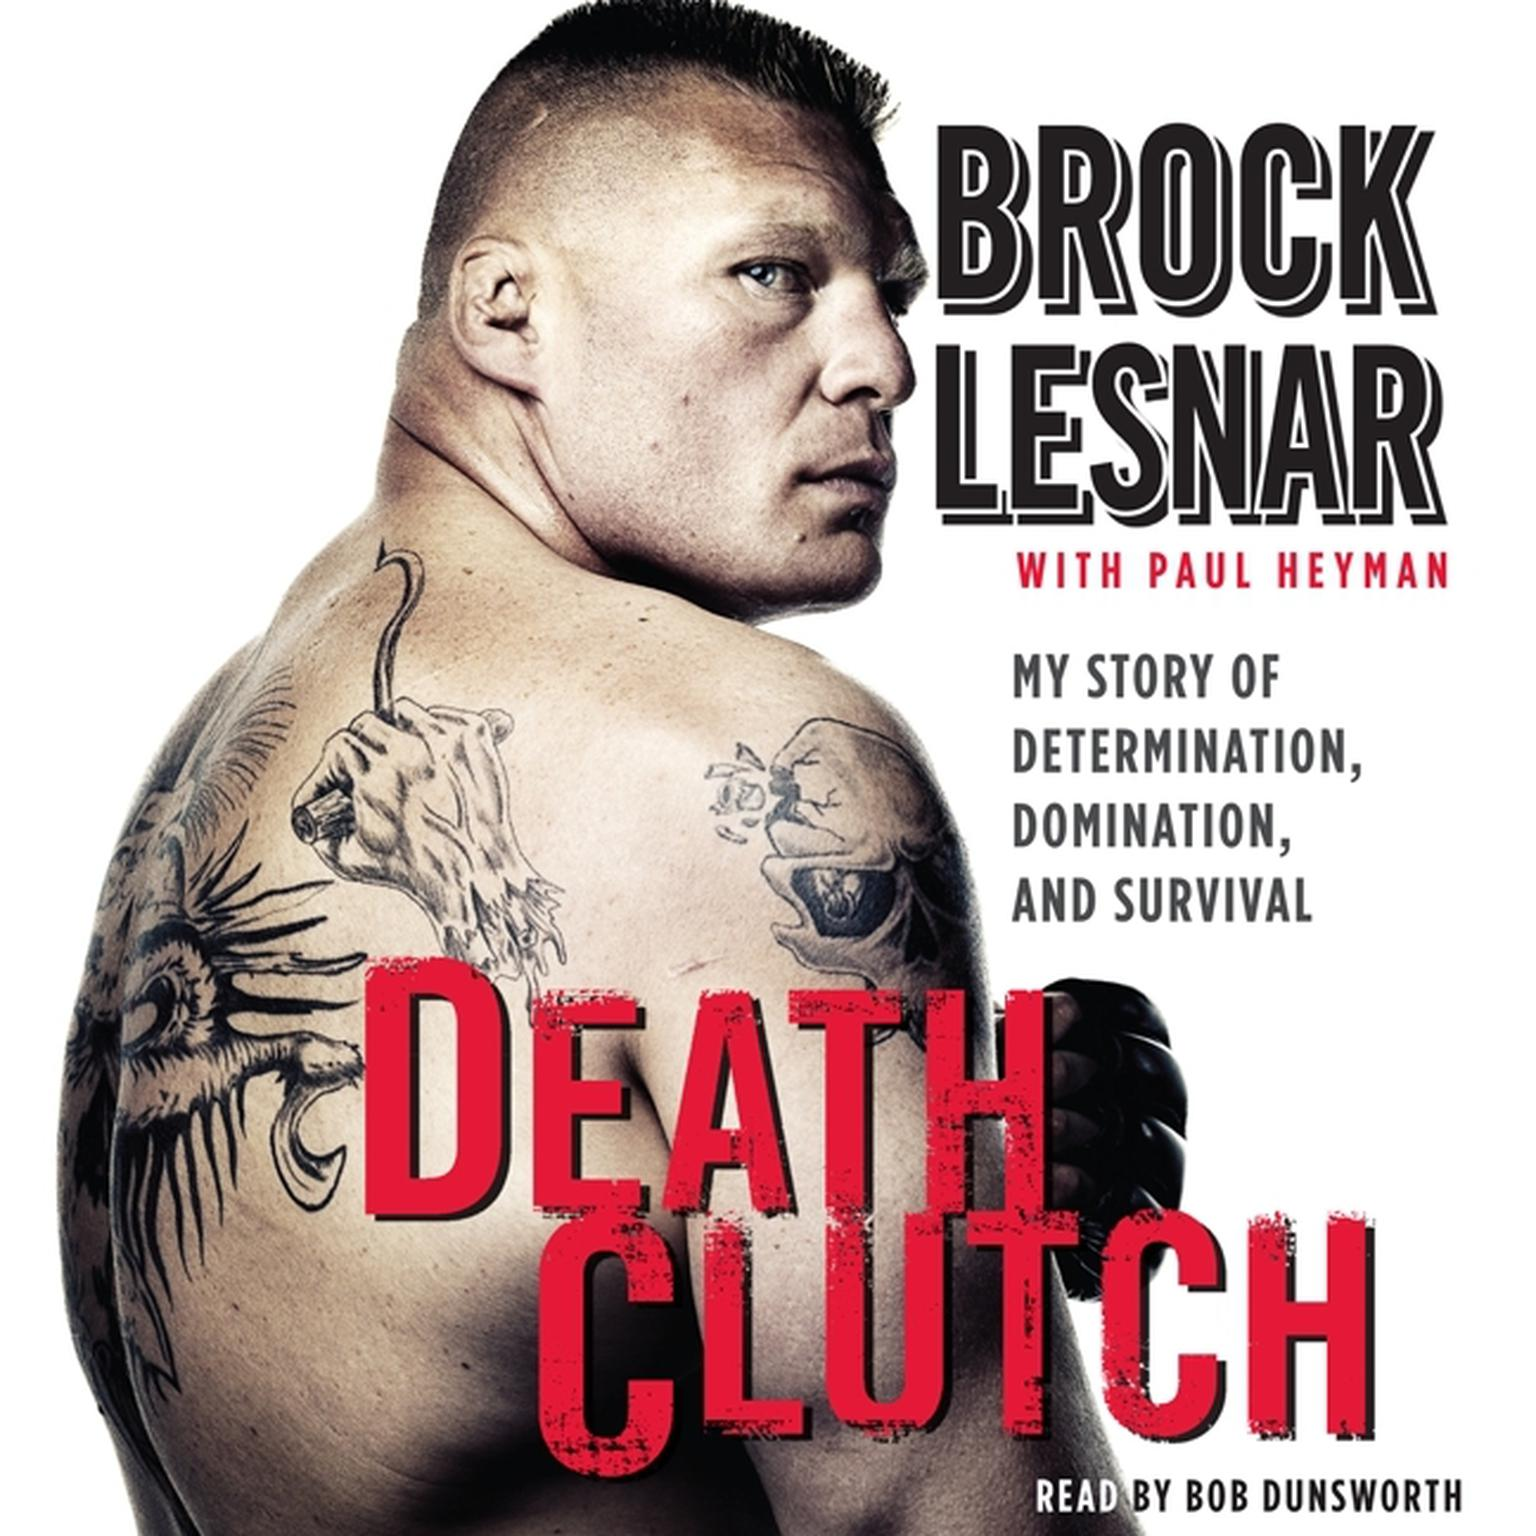 Printable Death Clutch: My Story of Determination, Domination, and Survival Audiobook Cover Art